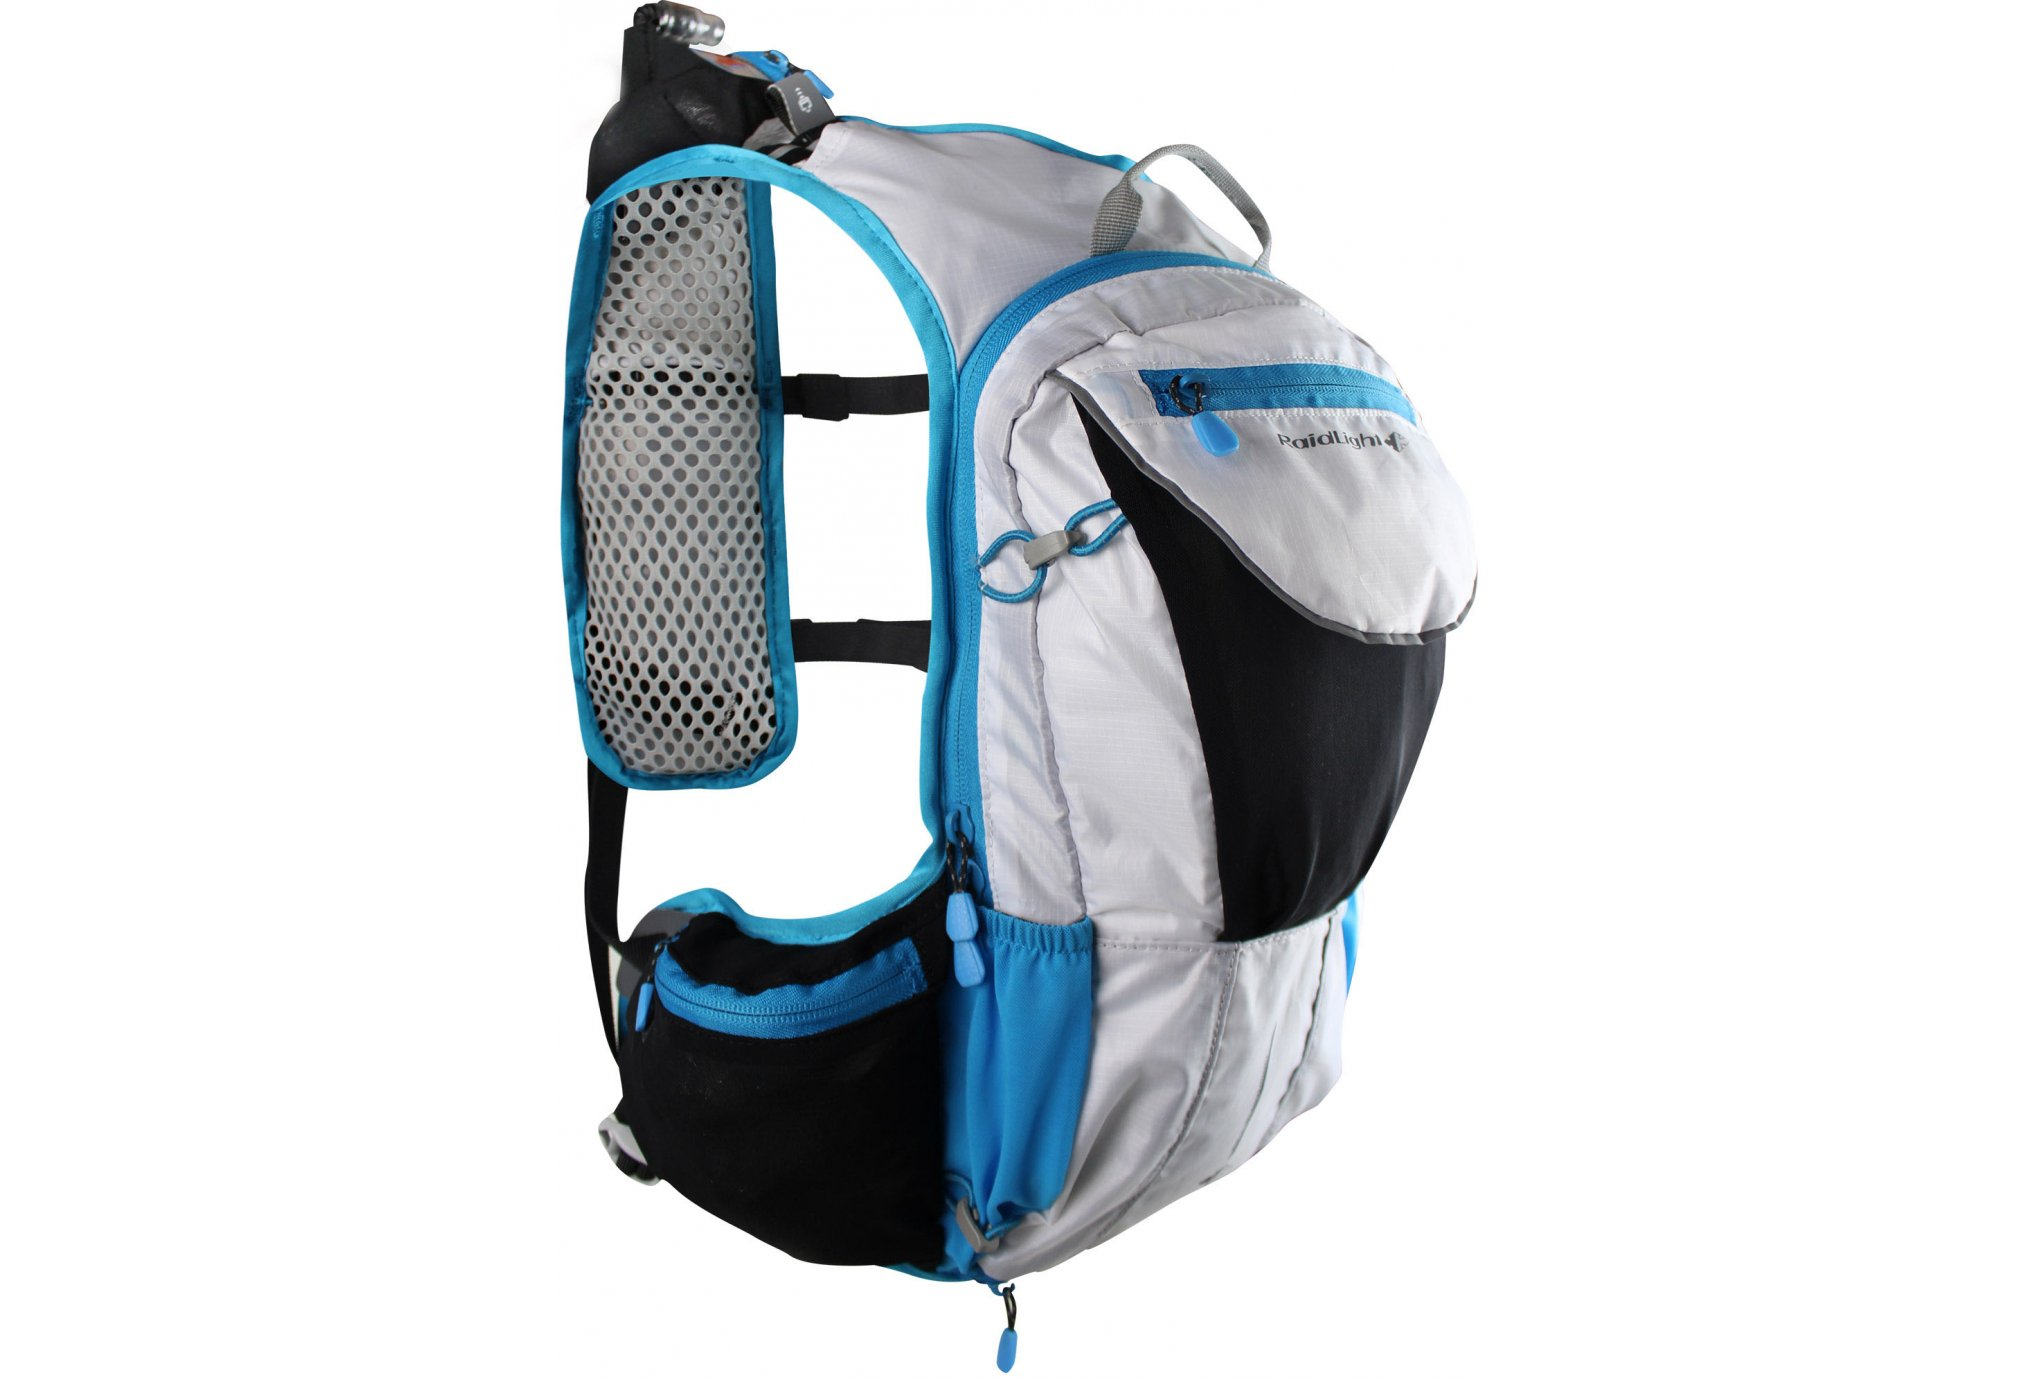 Raidlight Ultra Legend 5L Sac hydratation / Gourde